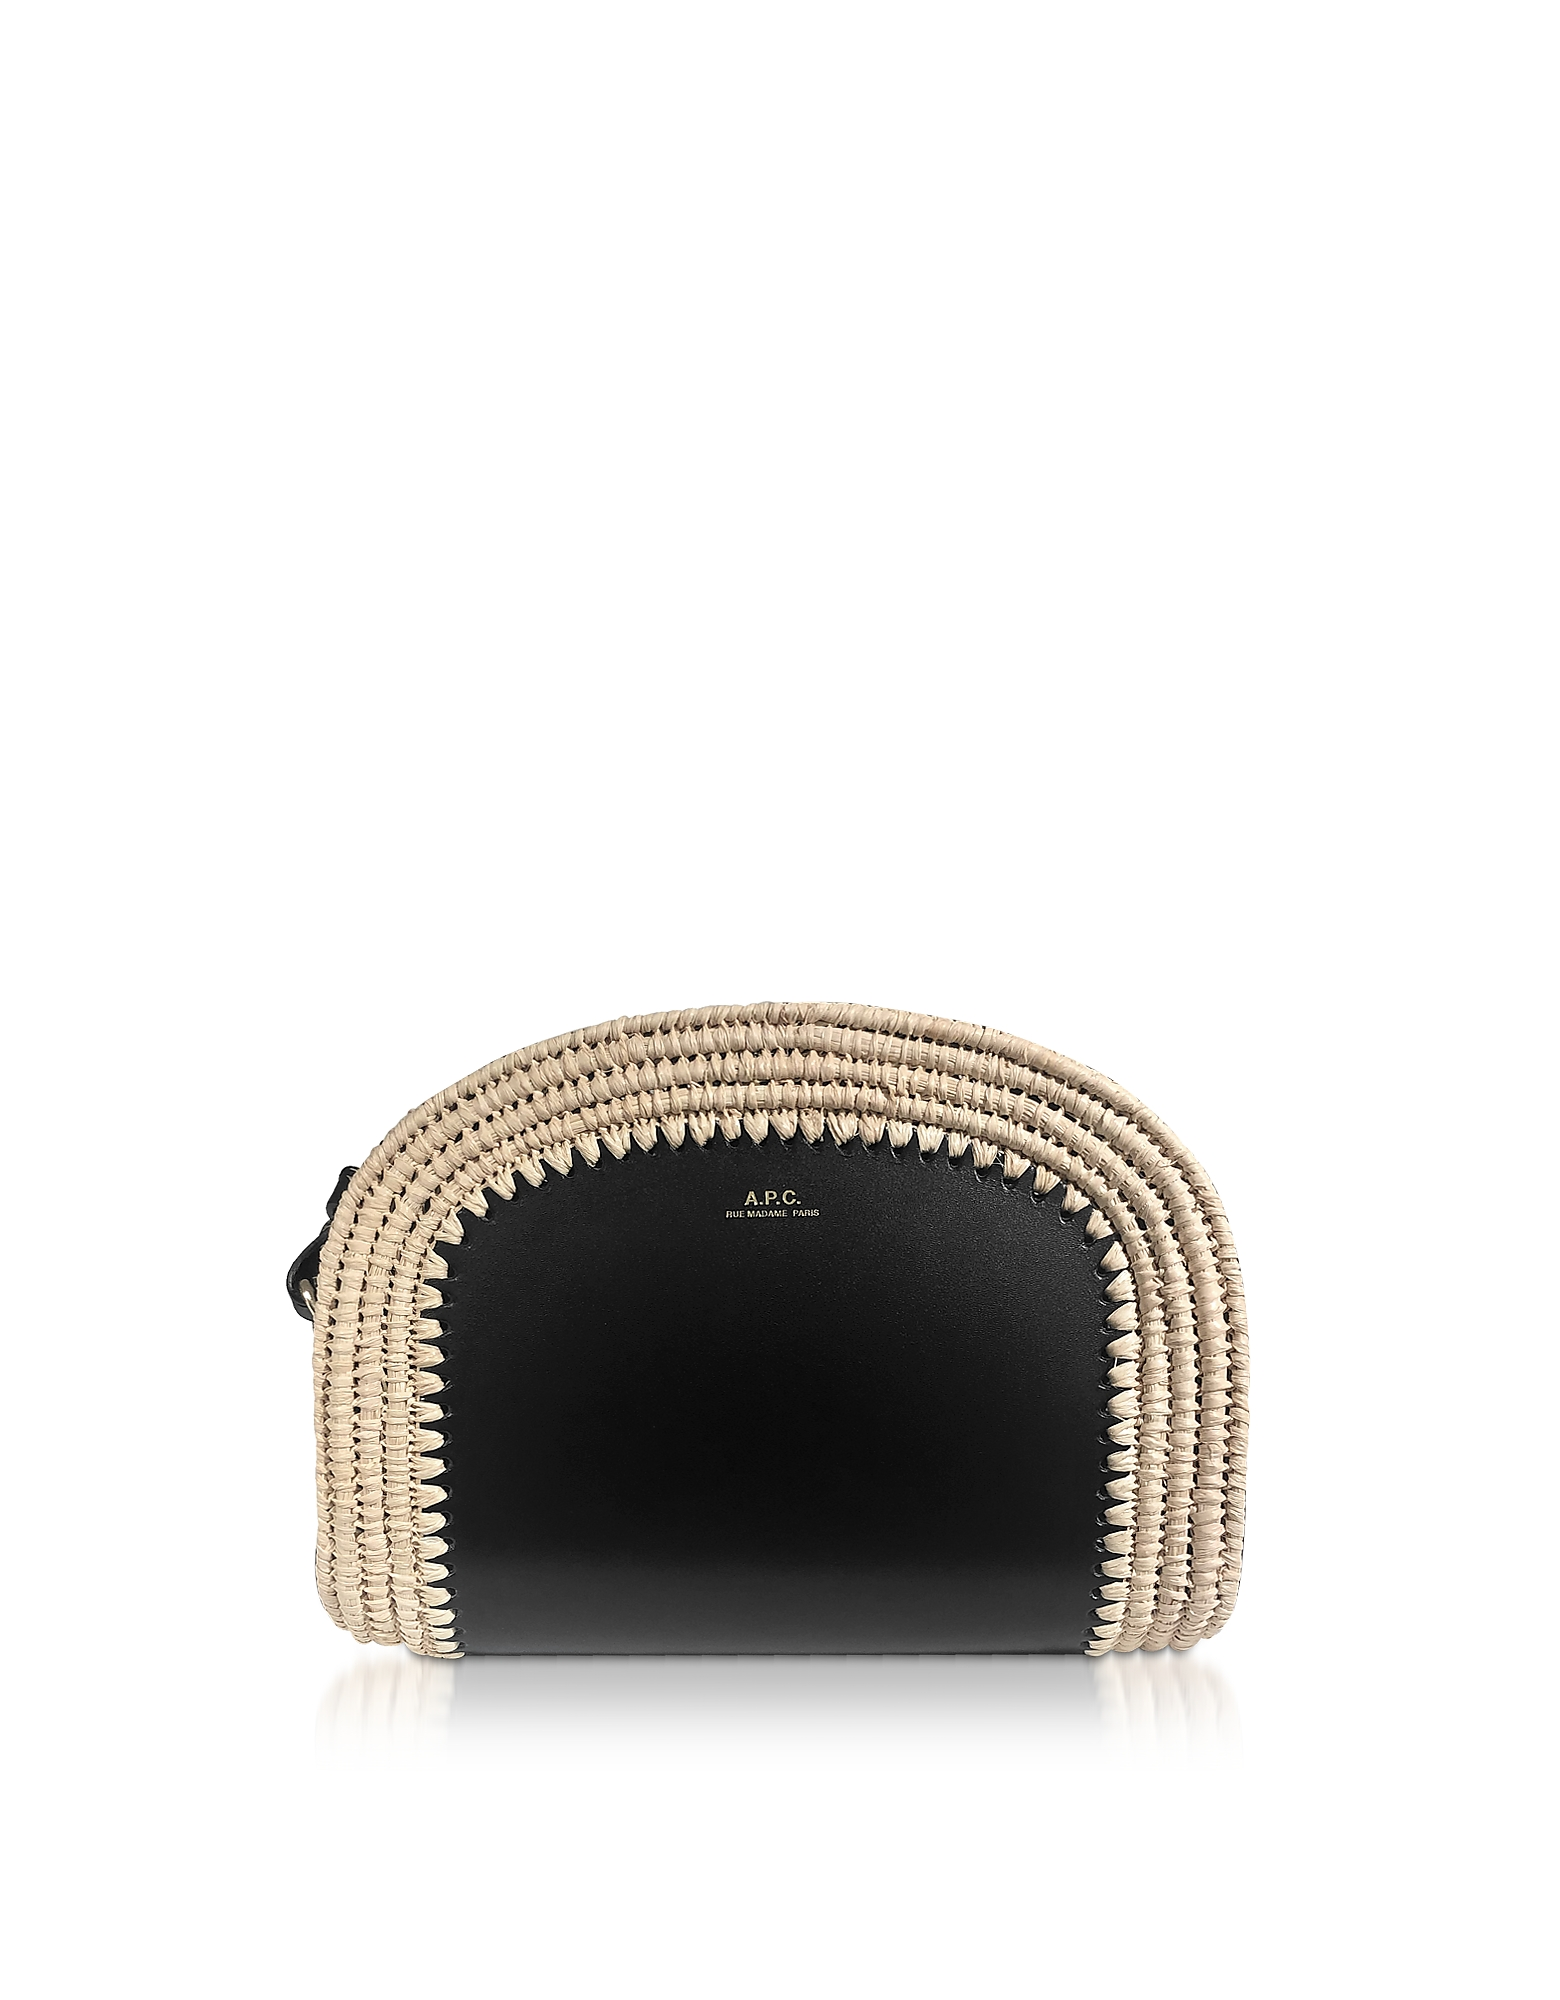 A.P.C. Designer Handbags, Woven Straw & Black Leather Mini Demi-Lune Crossbody Bag